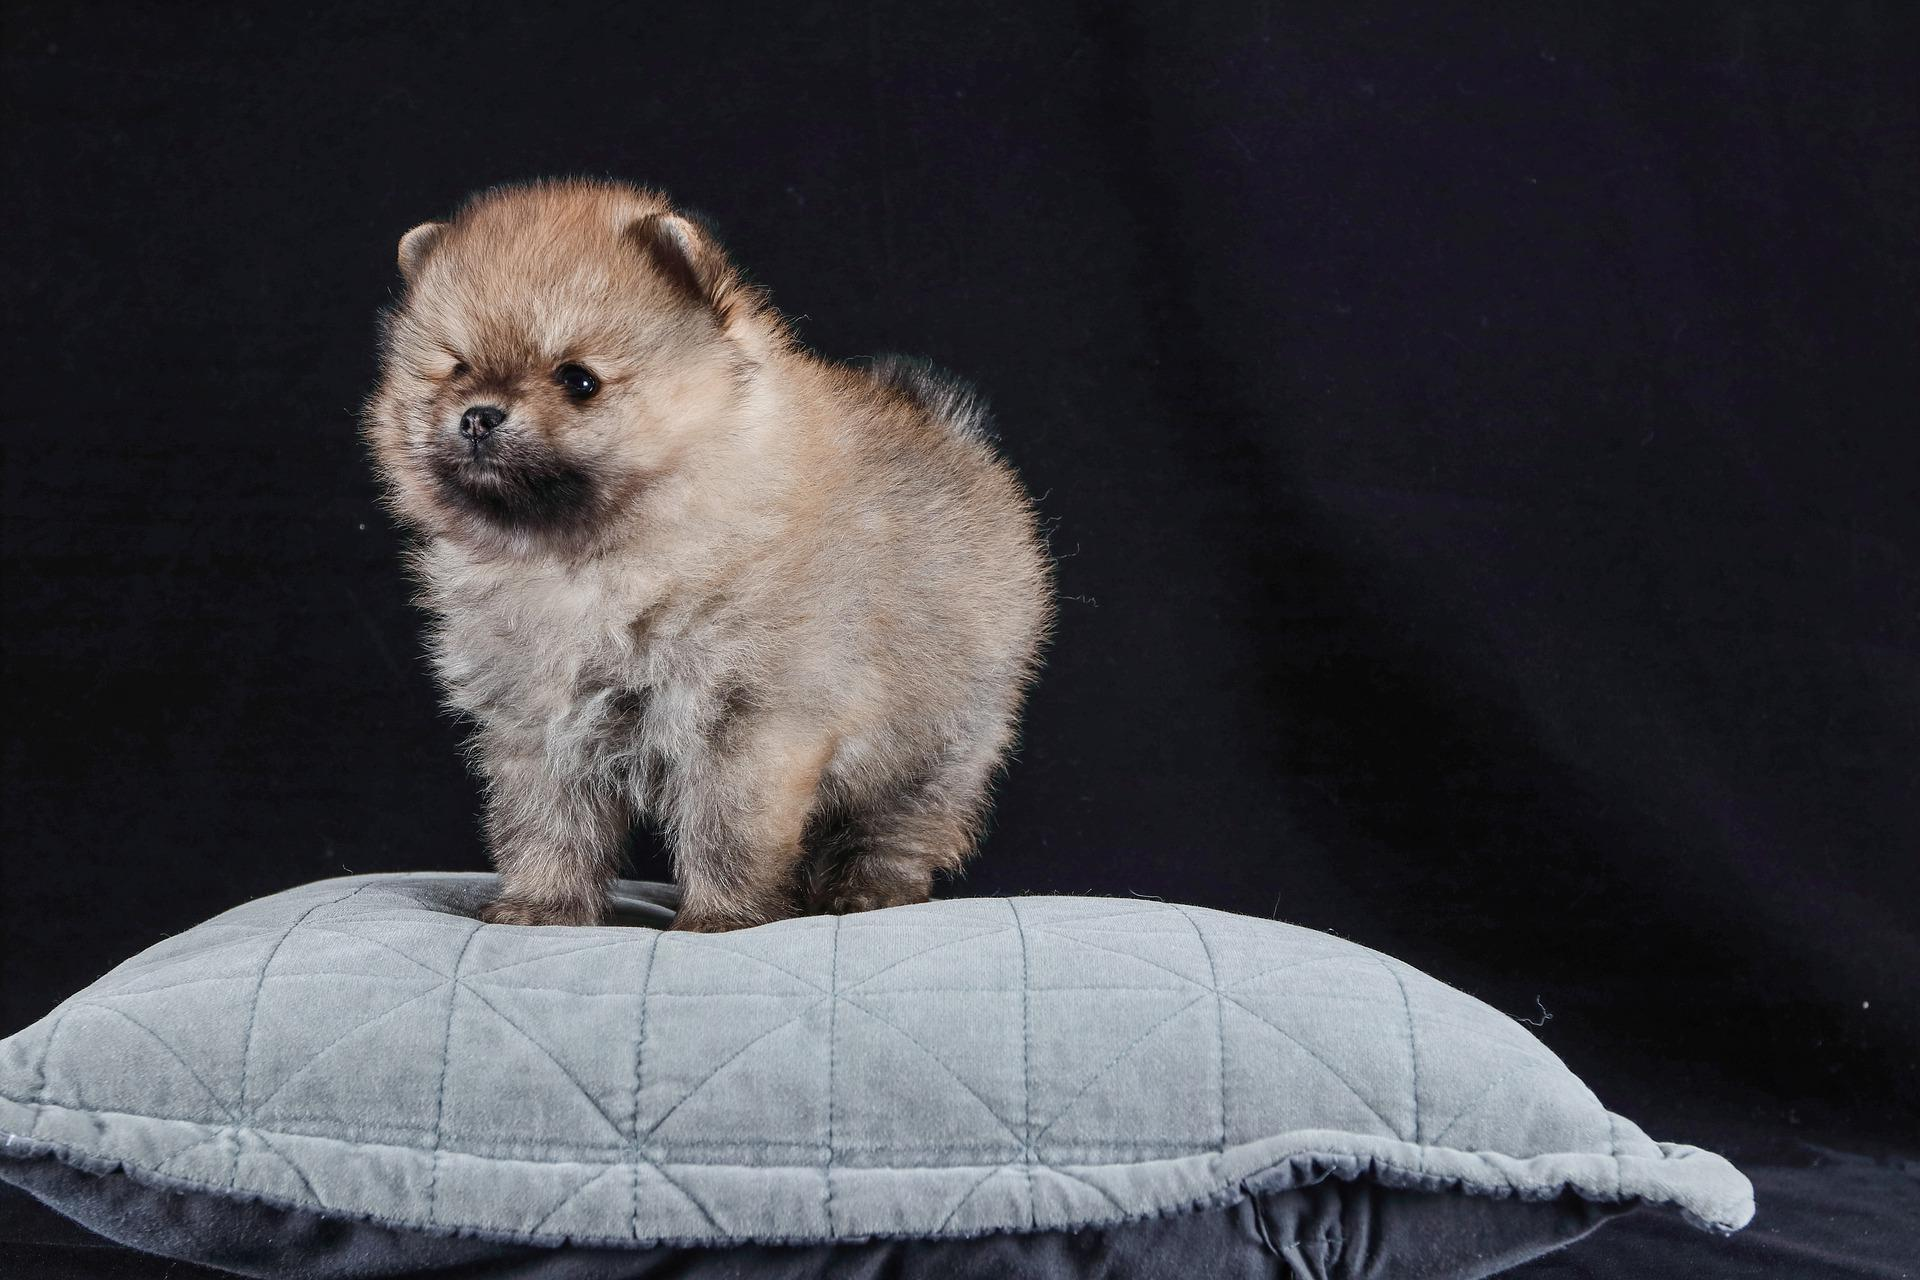 How To Take Care For A Pomeranian Puppy?